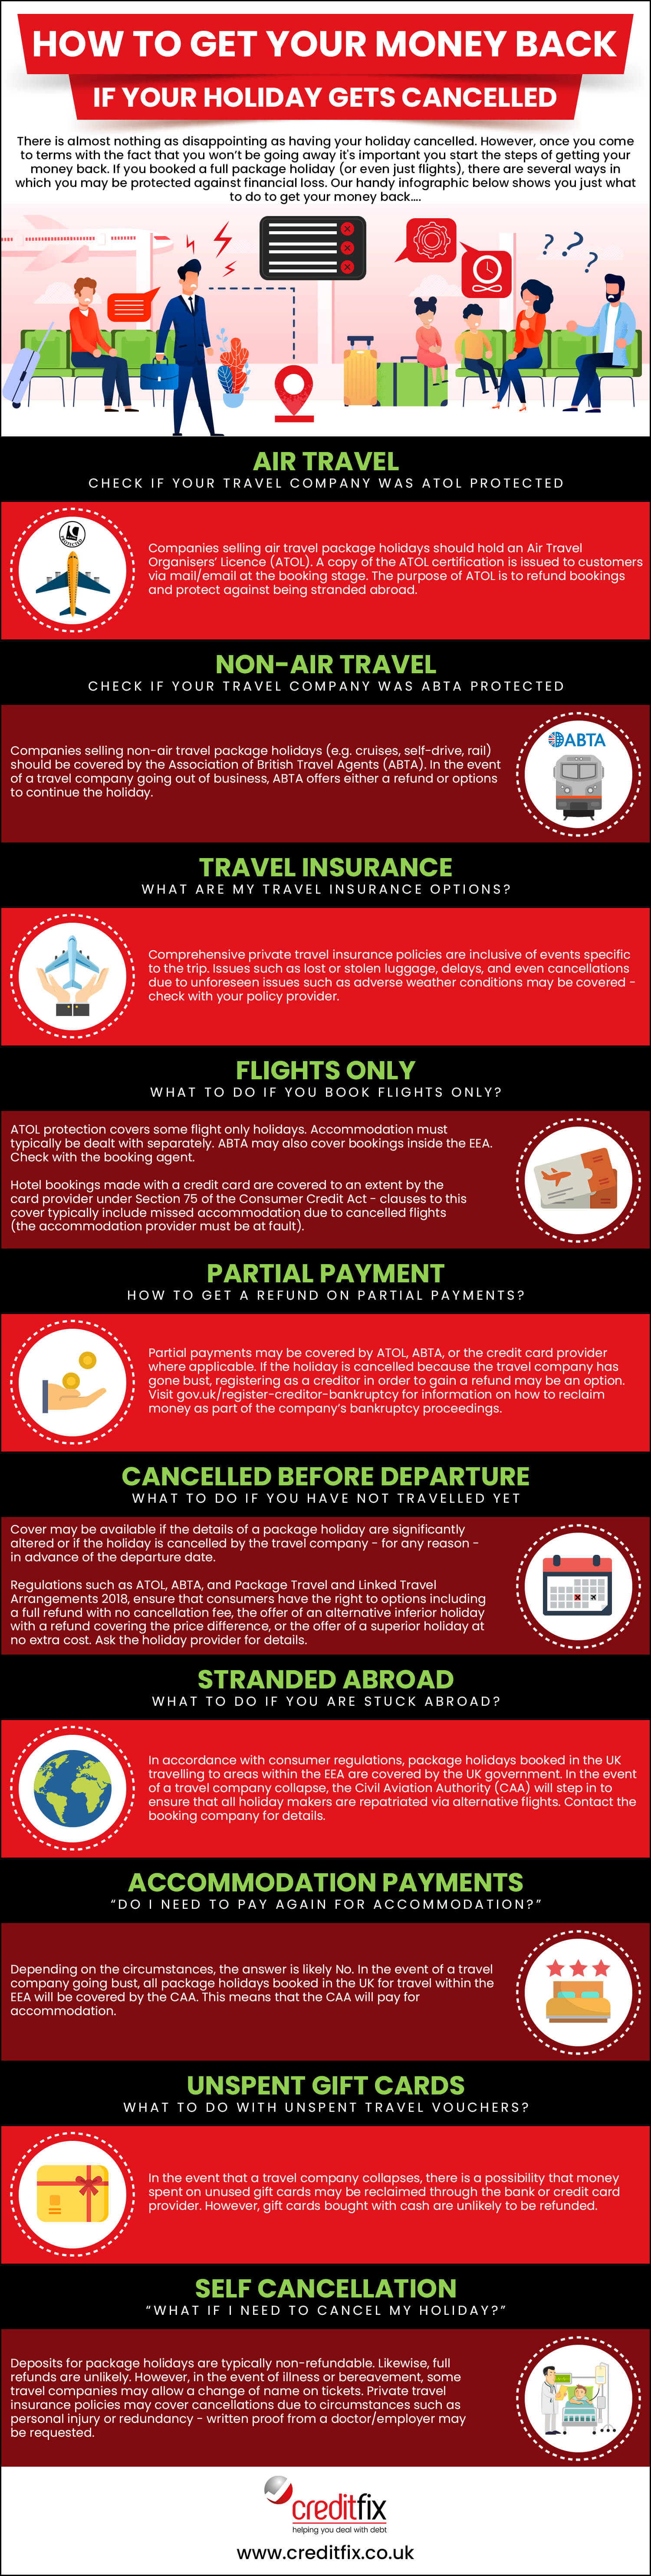 how to get your money back if your holiday is cancelled